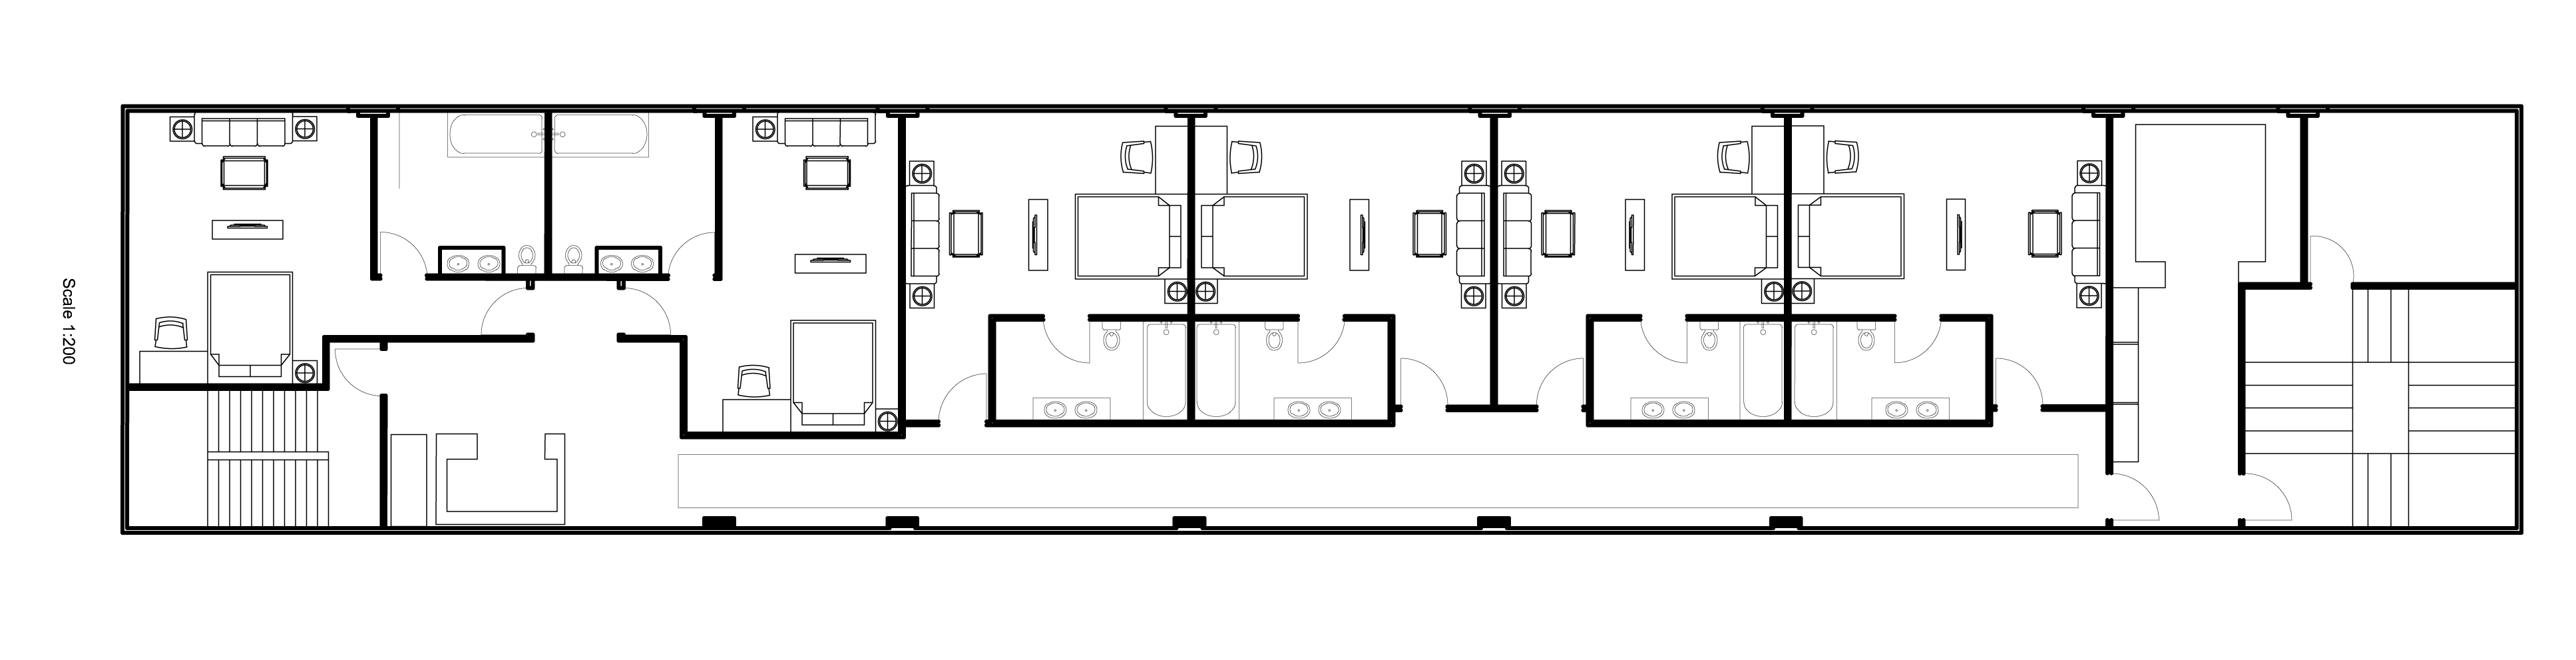 hotel room floor plans File:Floor plan of hotel rooms..jpg - Wikimedia Commons